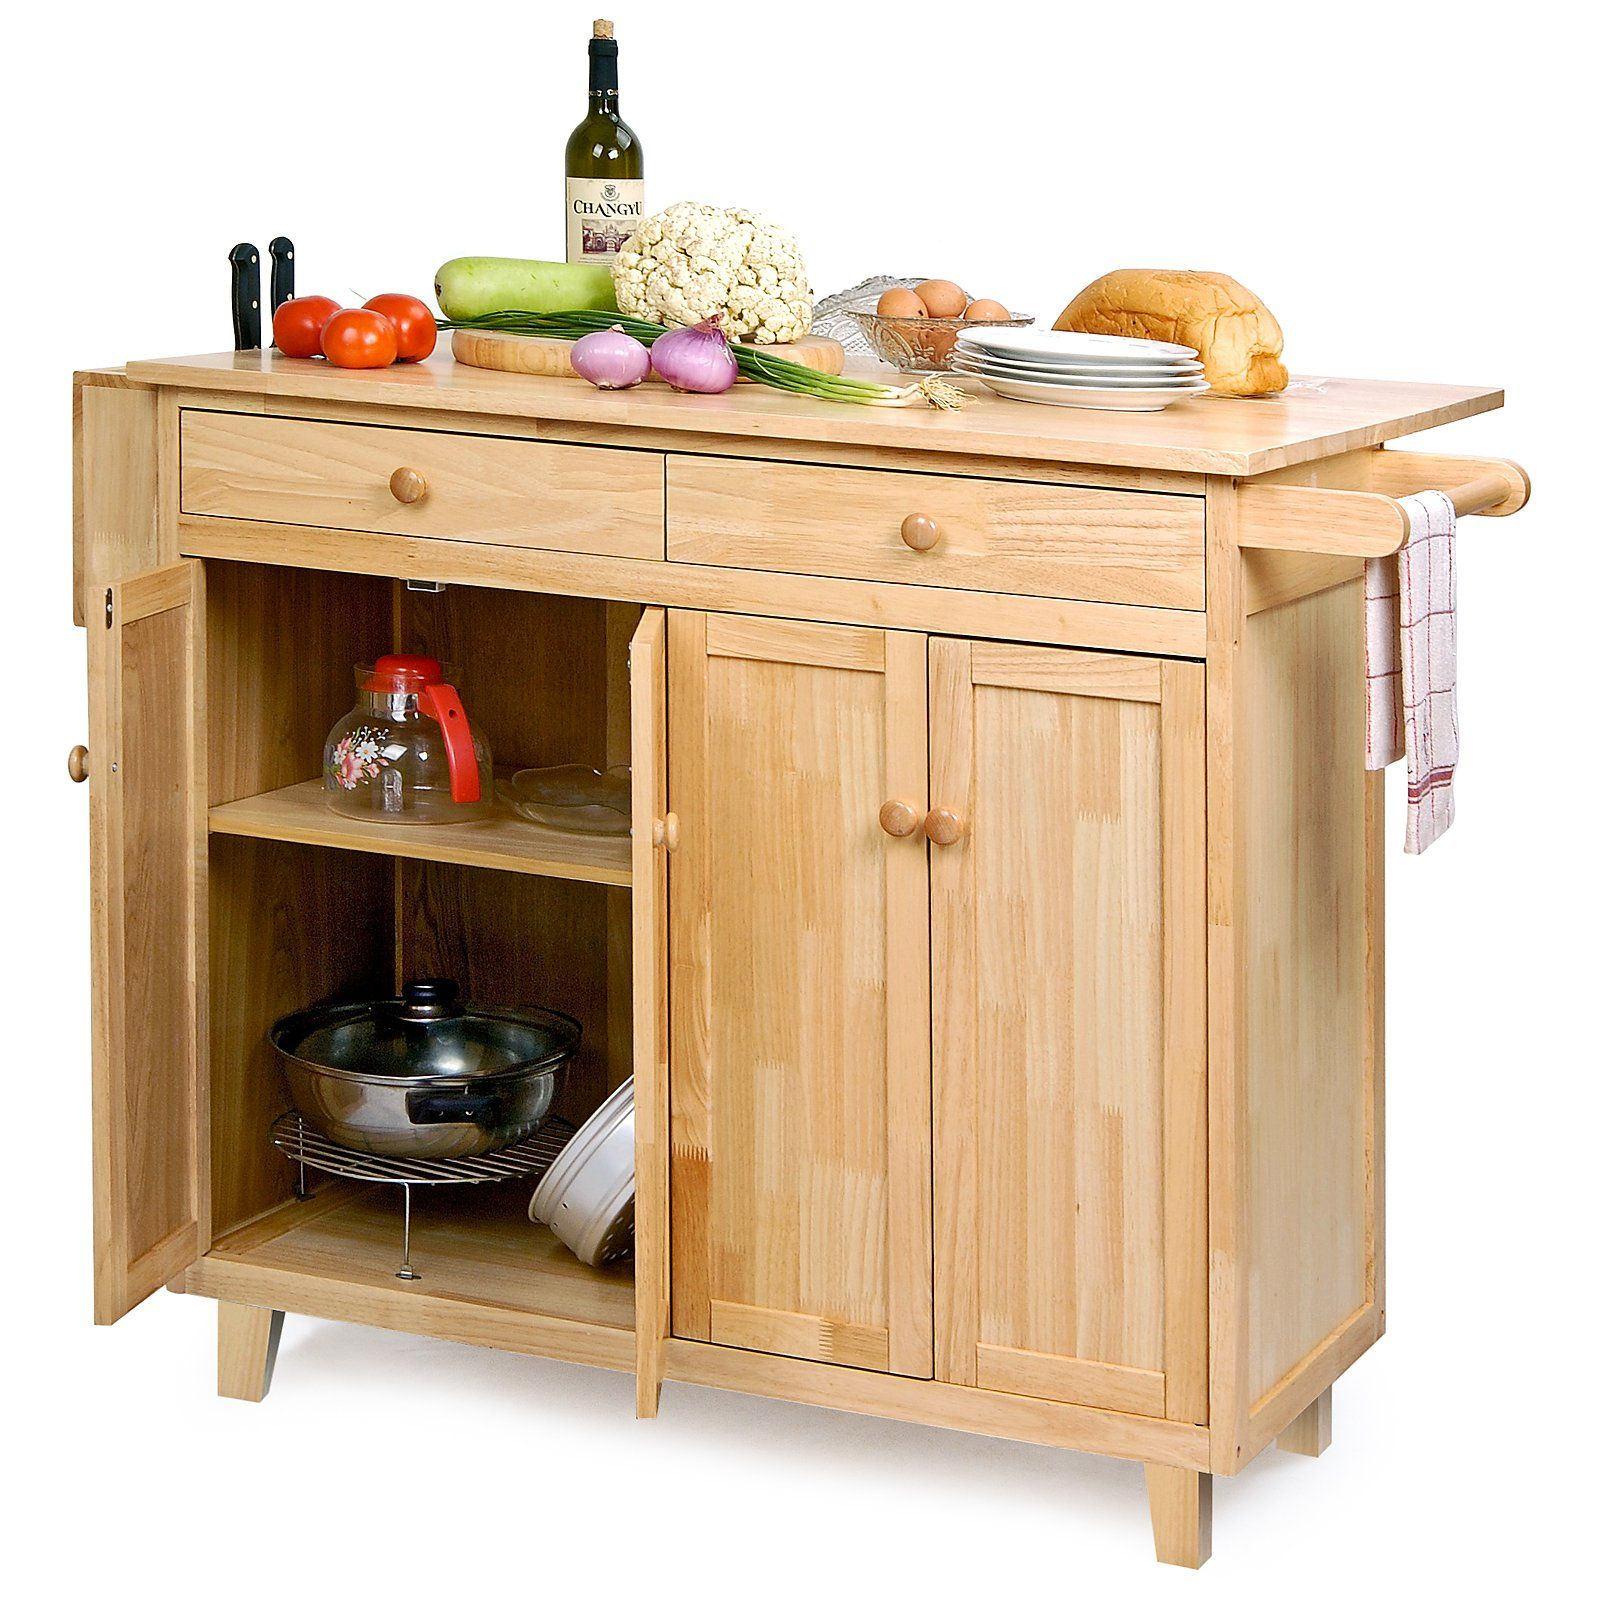 Belham Living Vinton Portable Kitchen Island With Optional Stools Kitchen Islands And Carts At Hayneedle Portable Kitchen Island Kitchen Kitchen Renovation